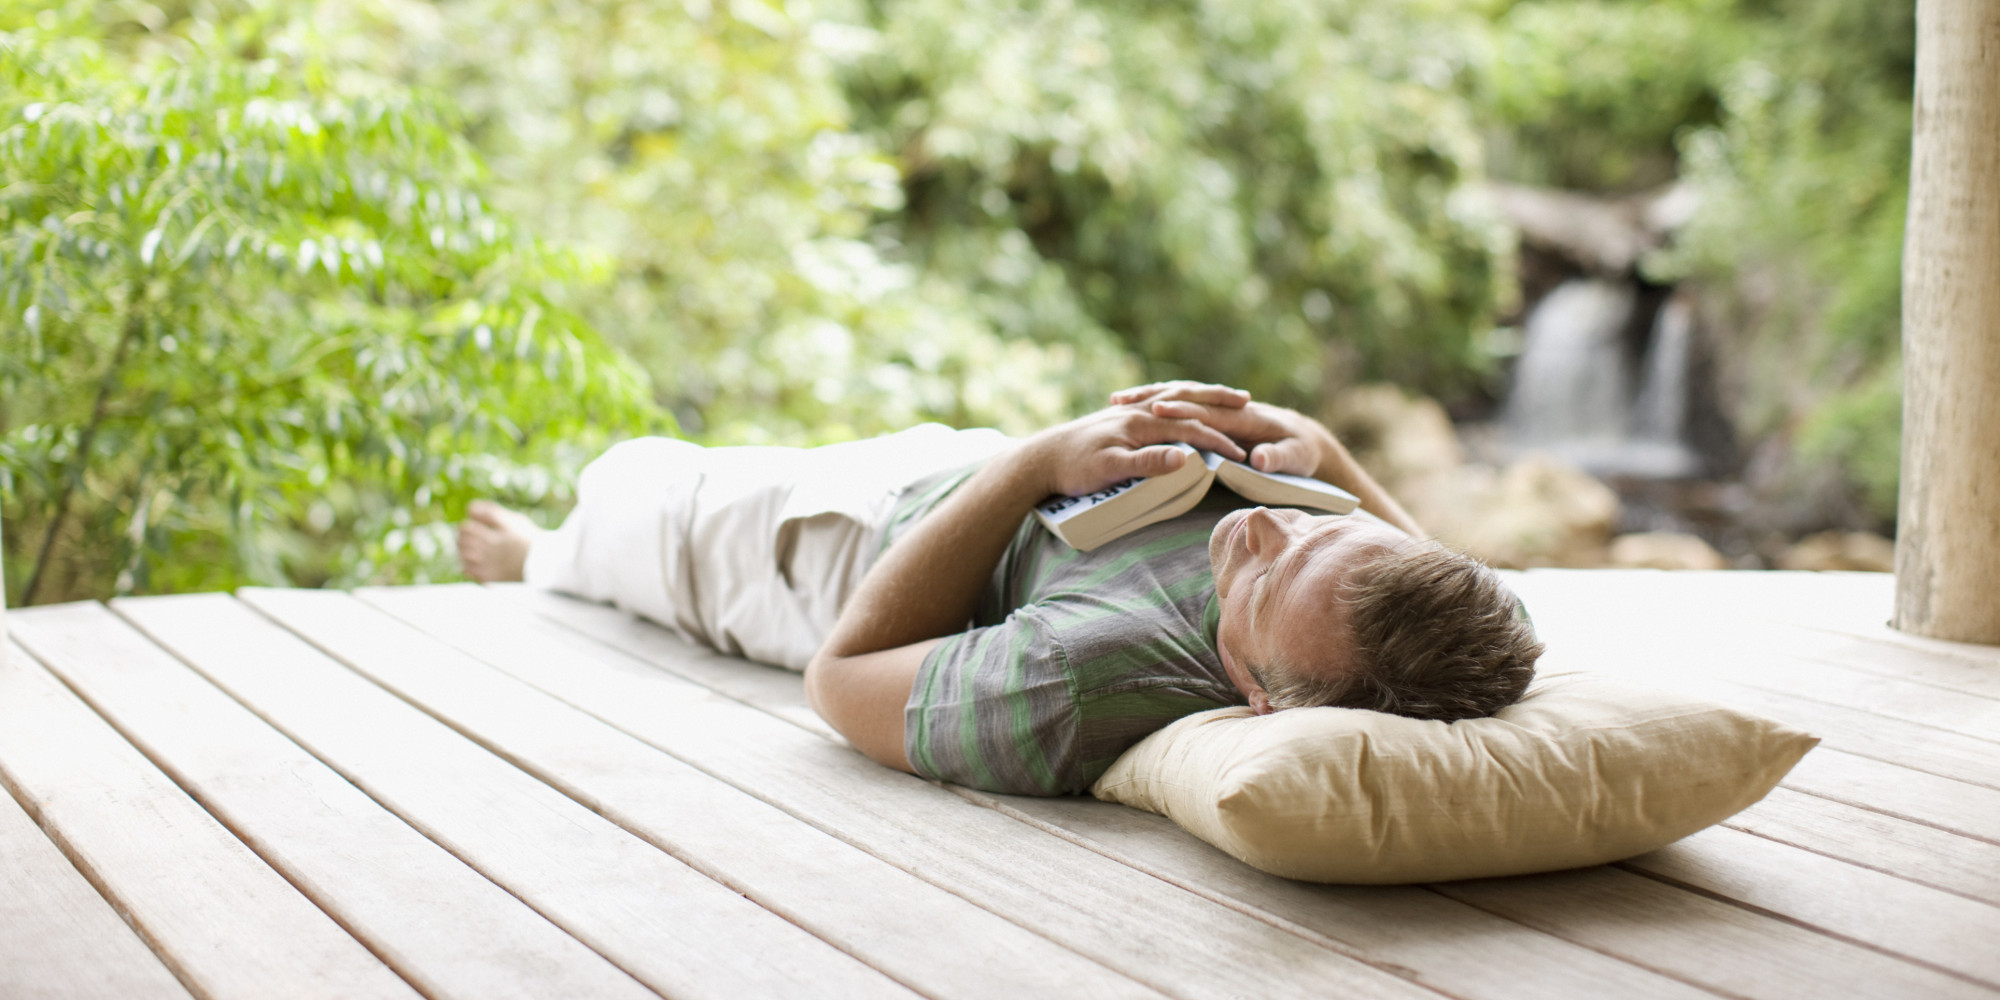 Man napping on porch in remote area